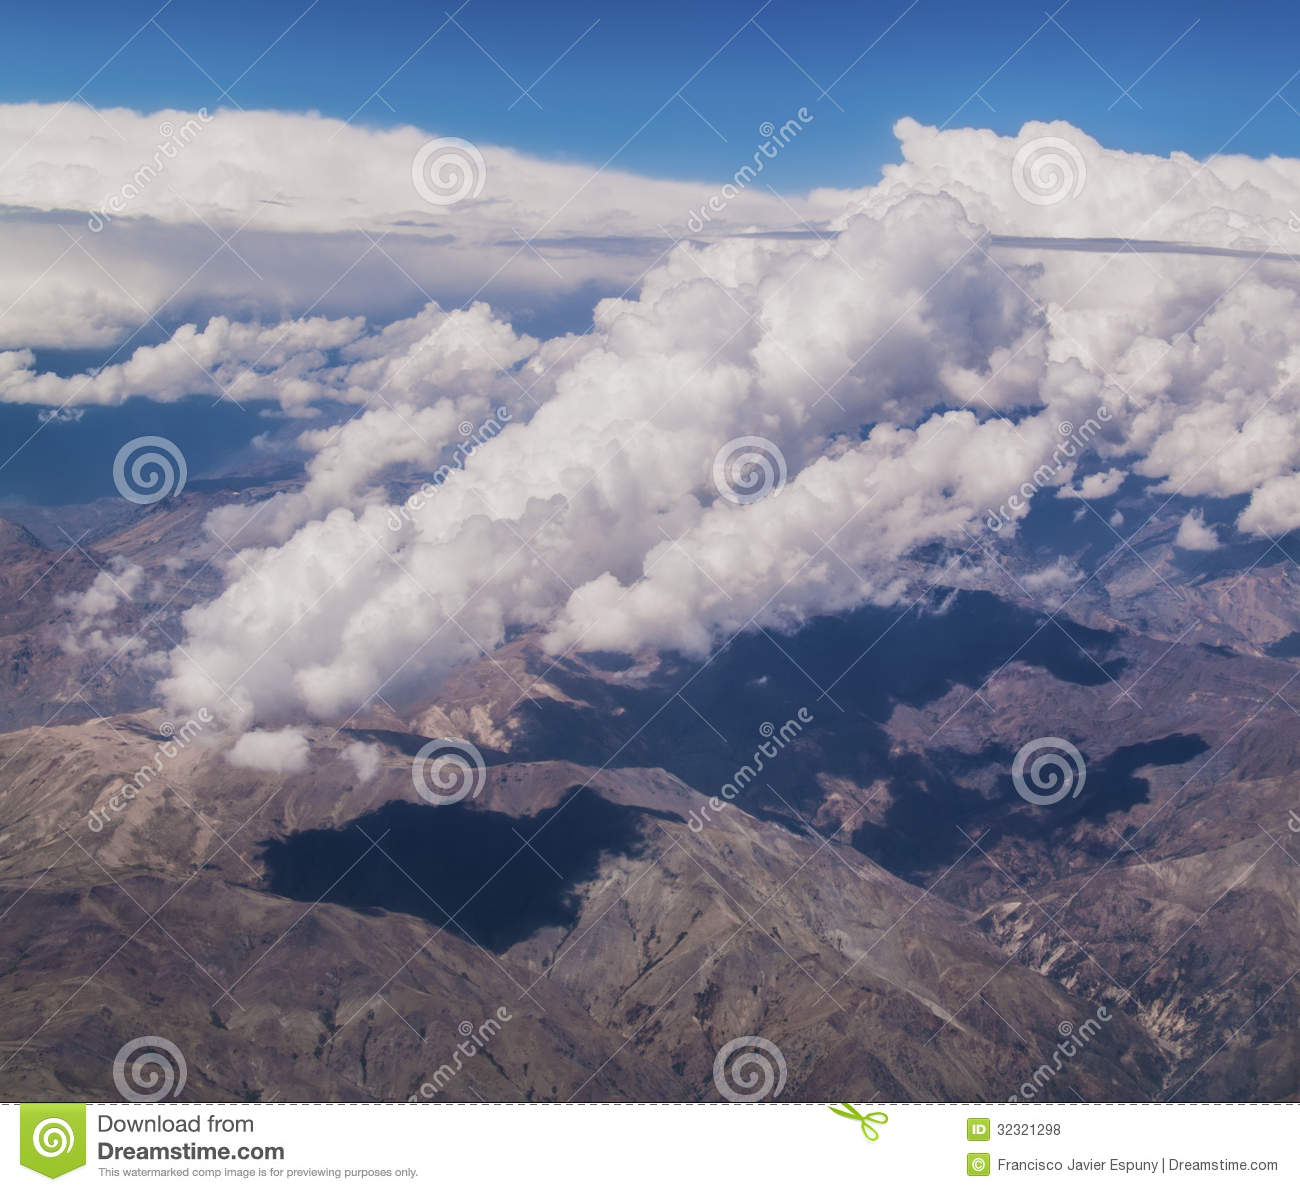 plane clouds and mountains - photo #28